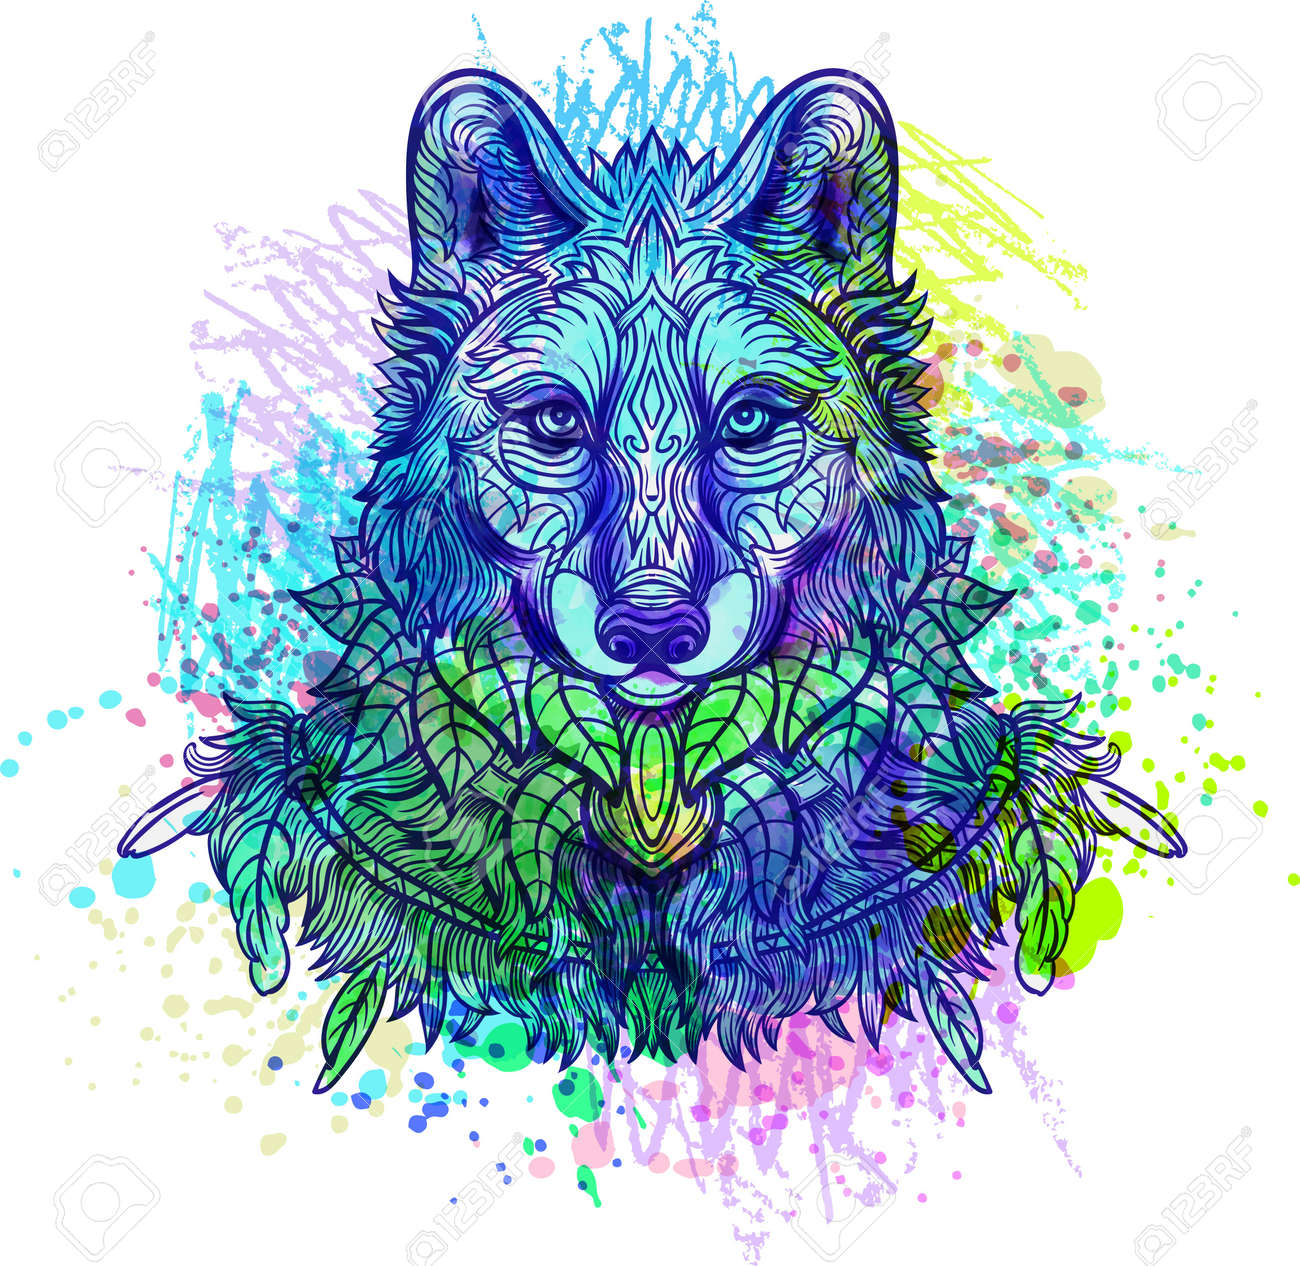 Wolf. Hand-drawn wolf side view with ethnic floral doodle pattern. Coloring page - zendala, design for tattoo, t-shirt print - 57549118